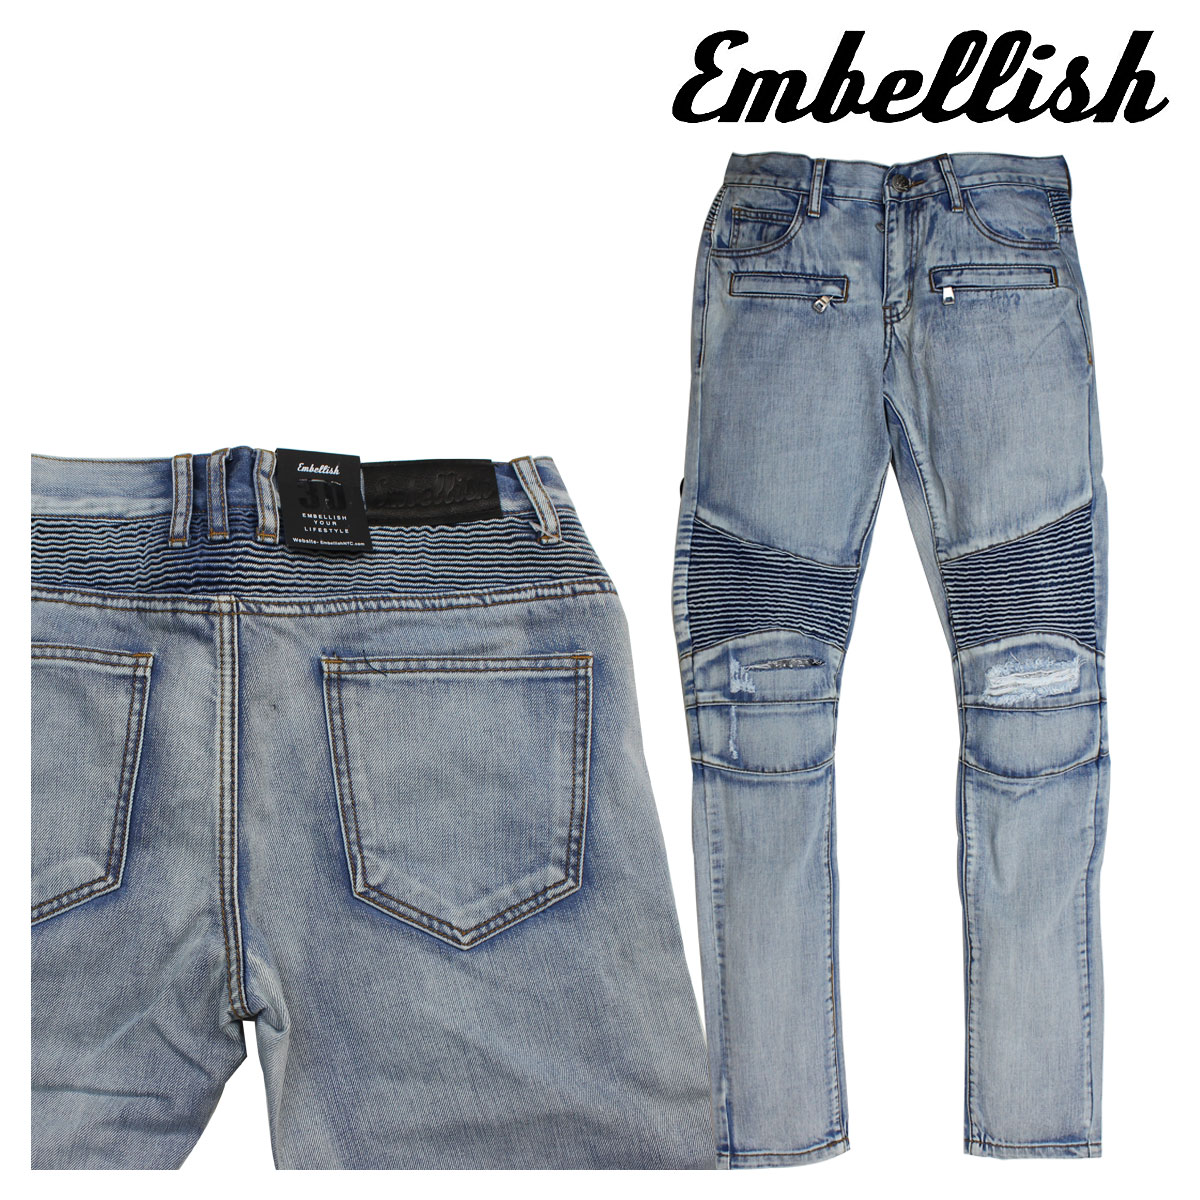 ALLSPORTS | Rakuten Global Market: Enblish Embellish NYC men's ...